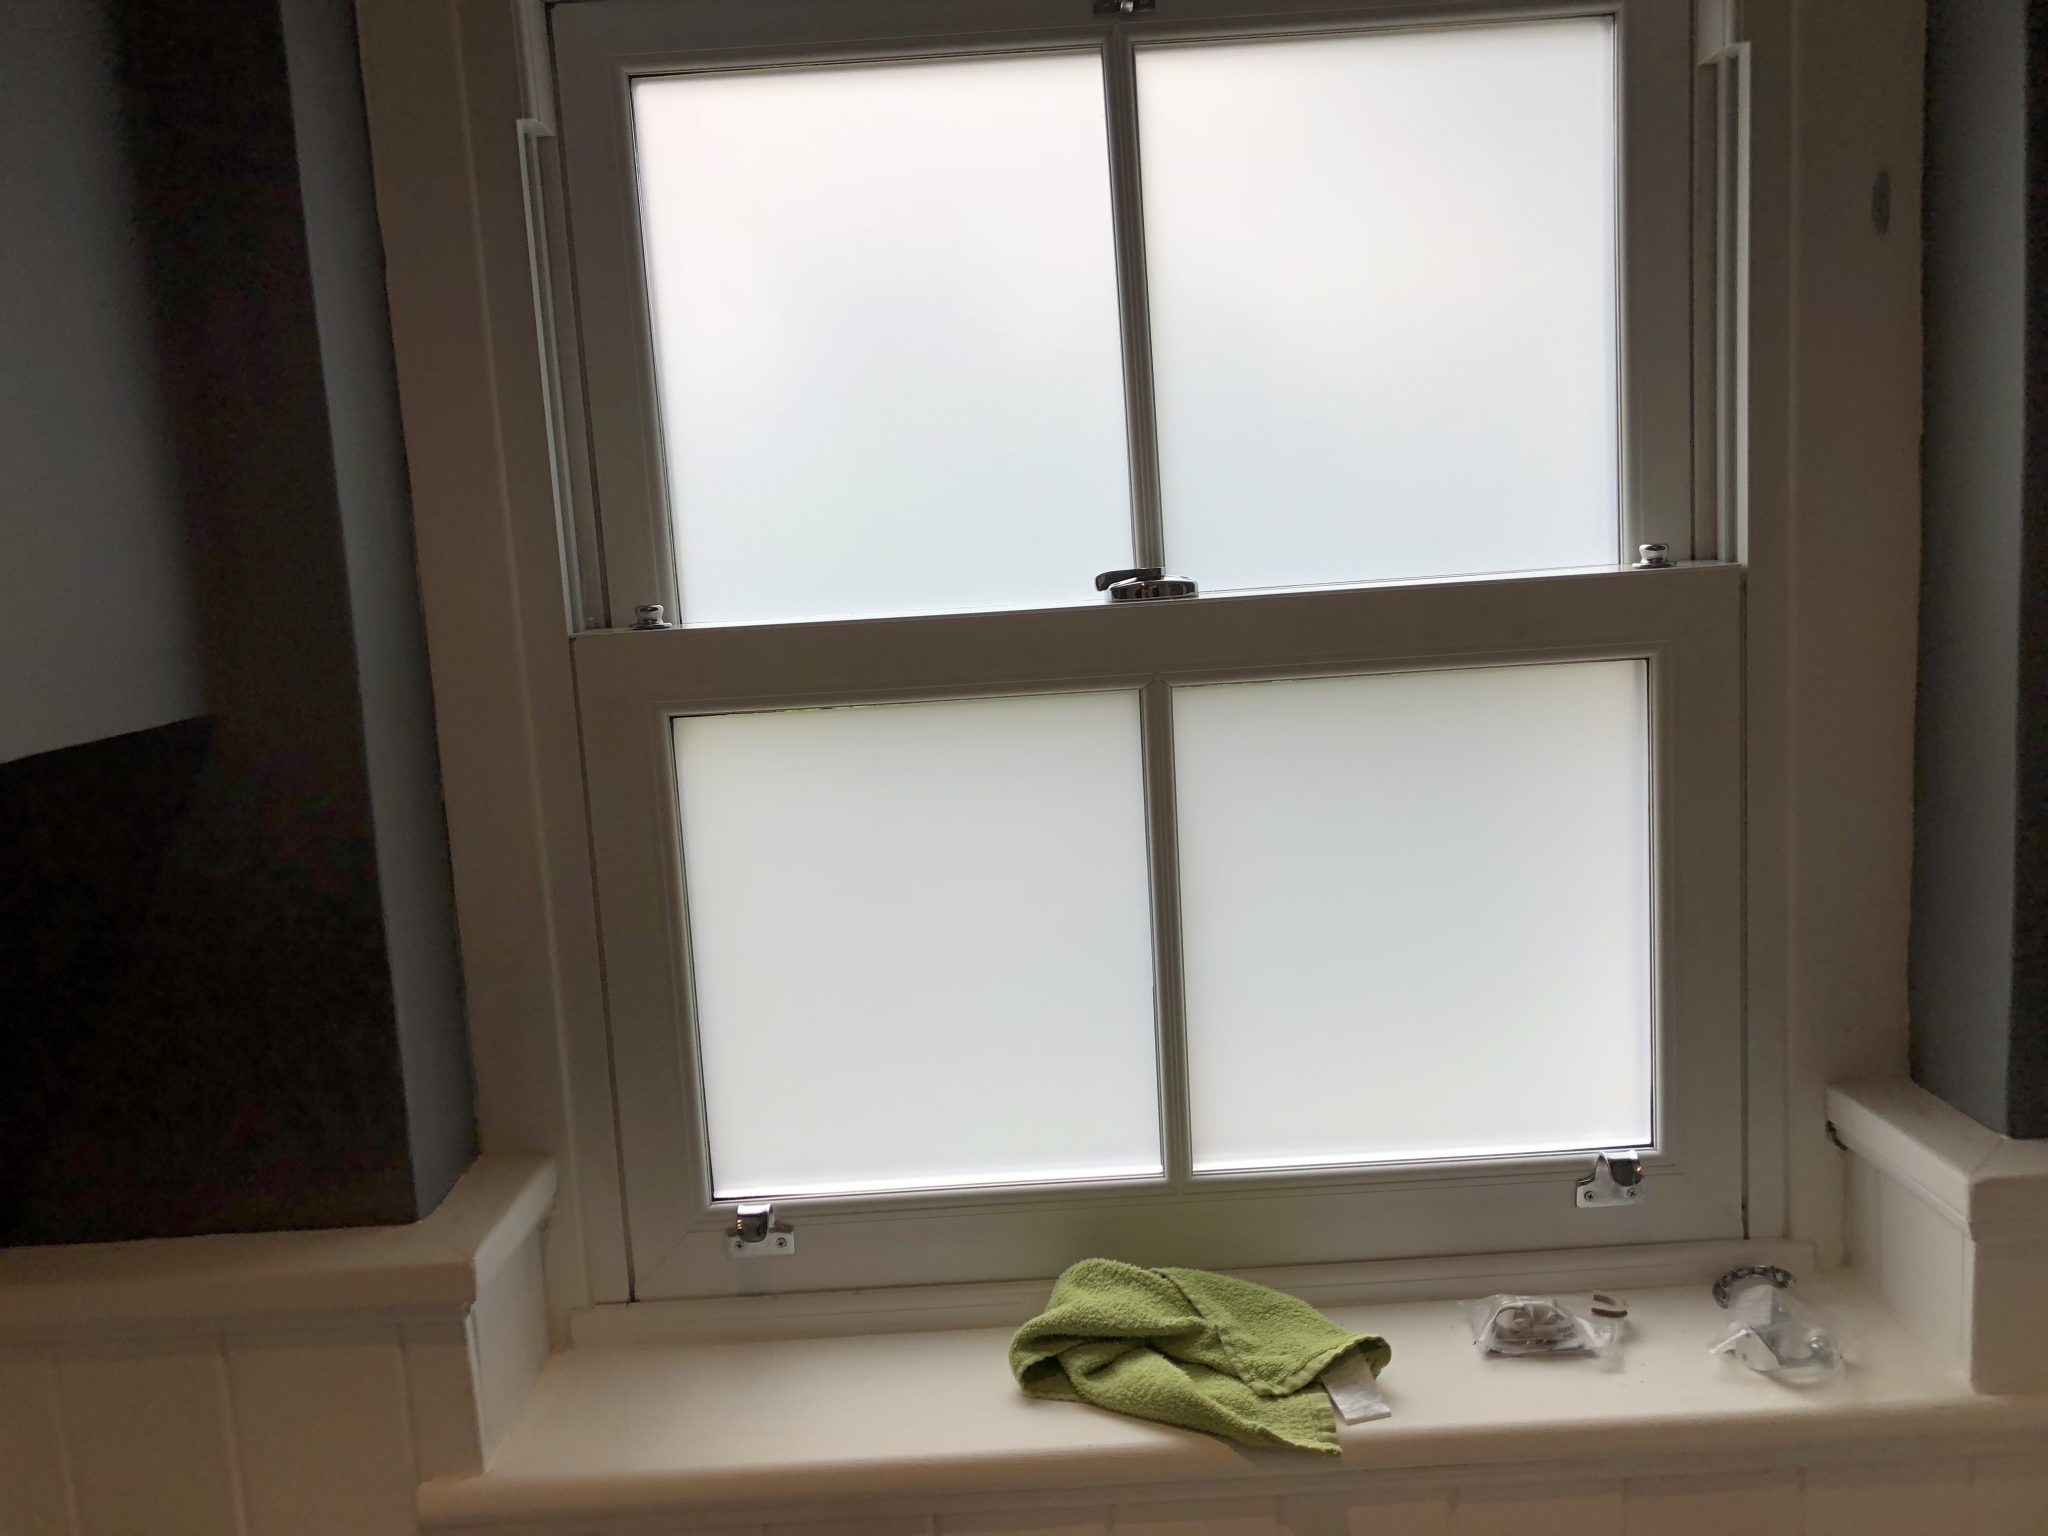 Frosted Obscure Window Film for Bathrooms